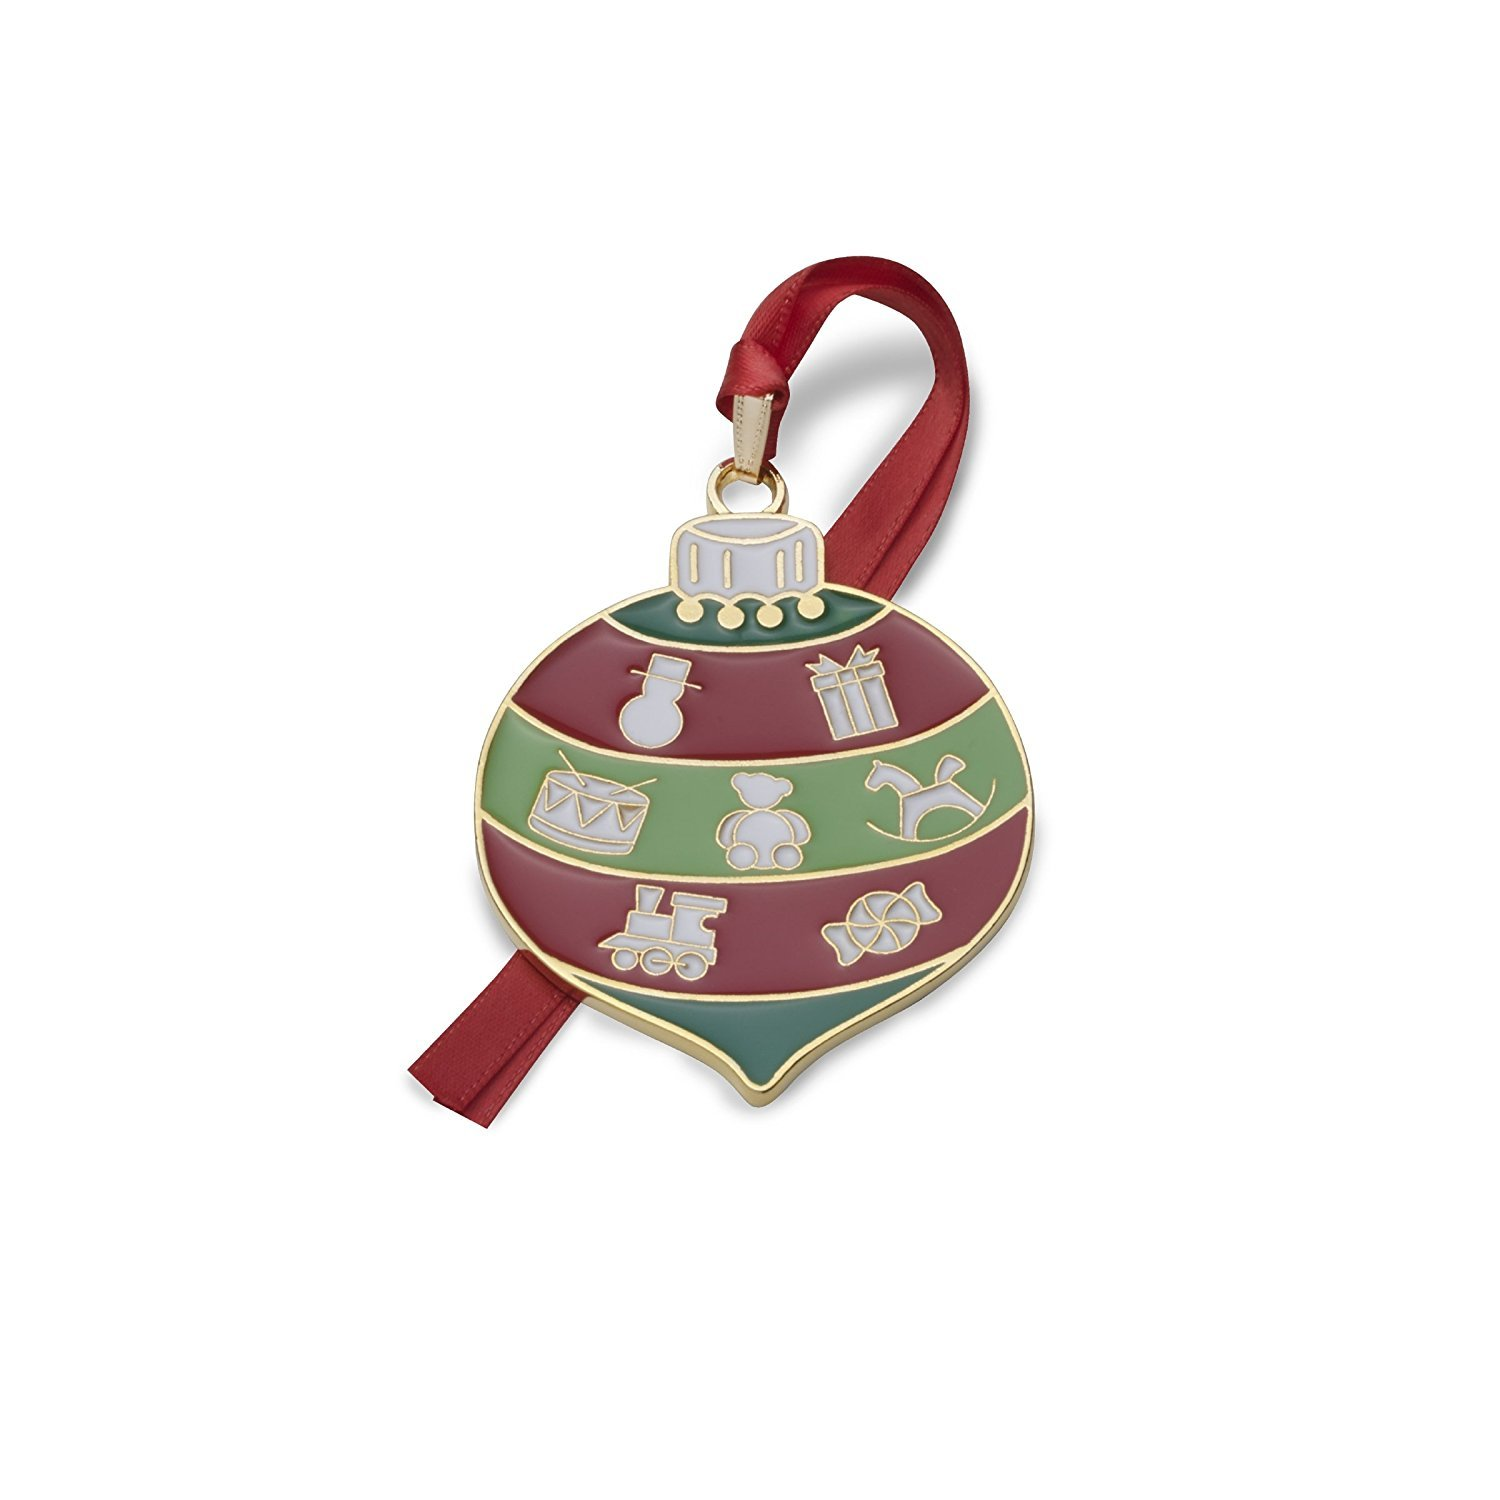 Wallace 2017 Gold-plated & Enameled Wonders of Christmas (Christmas Bauble ) 8th Edition